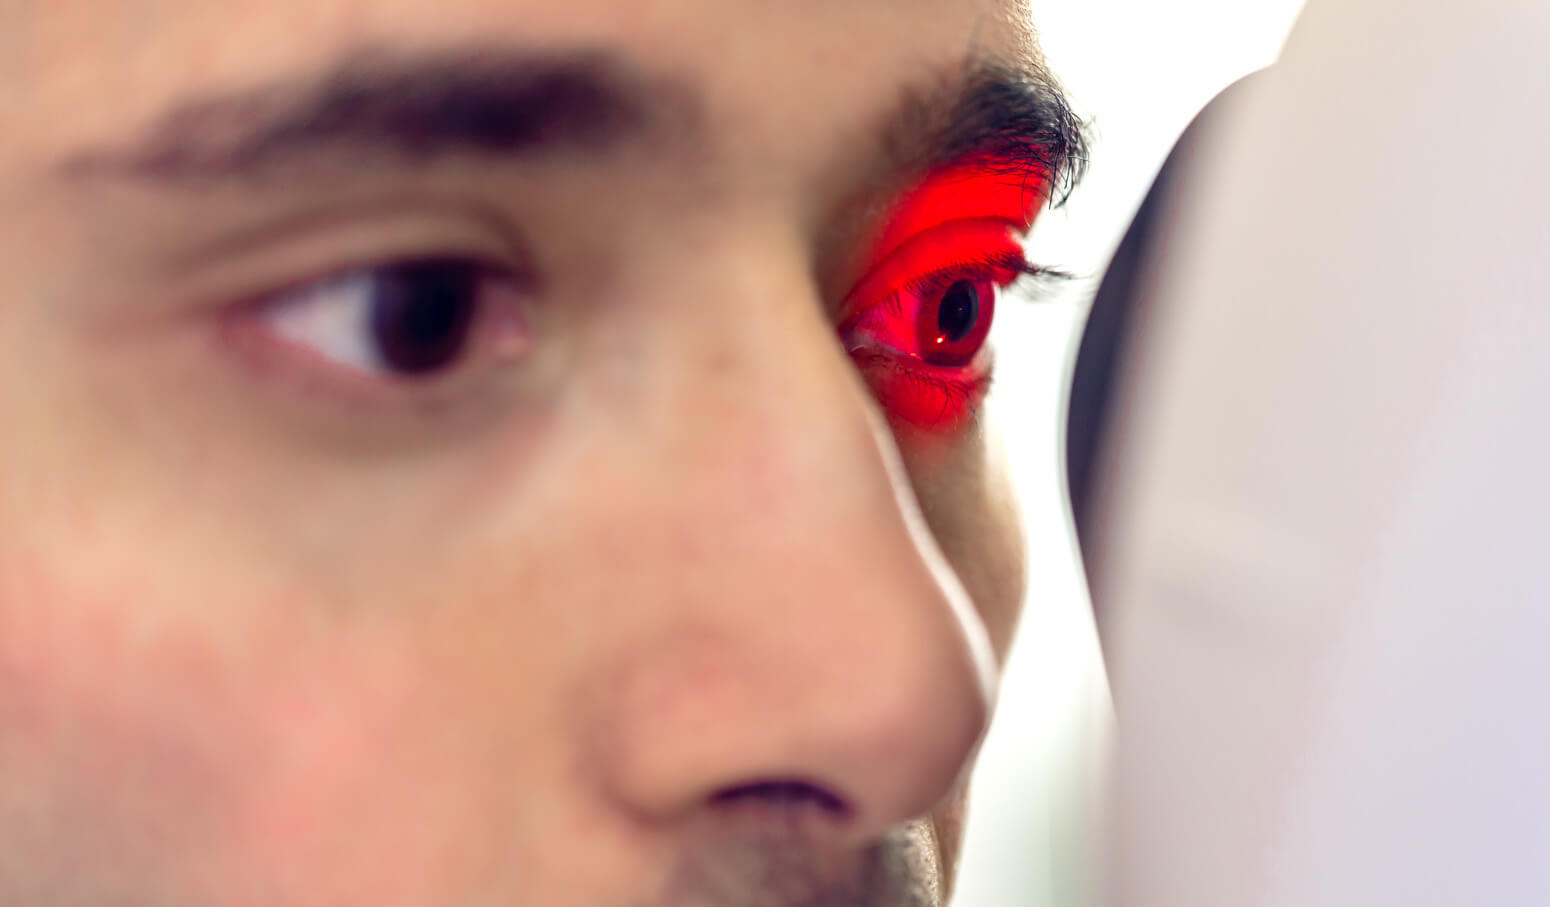 Google has a new AI that can predict heart disease by looking at your eyes